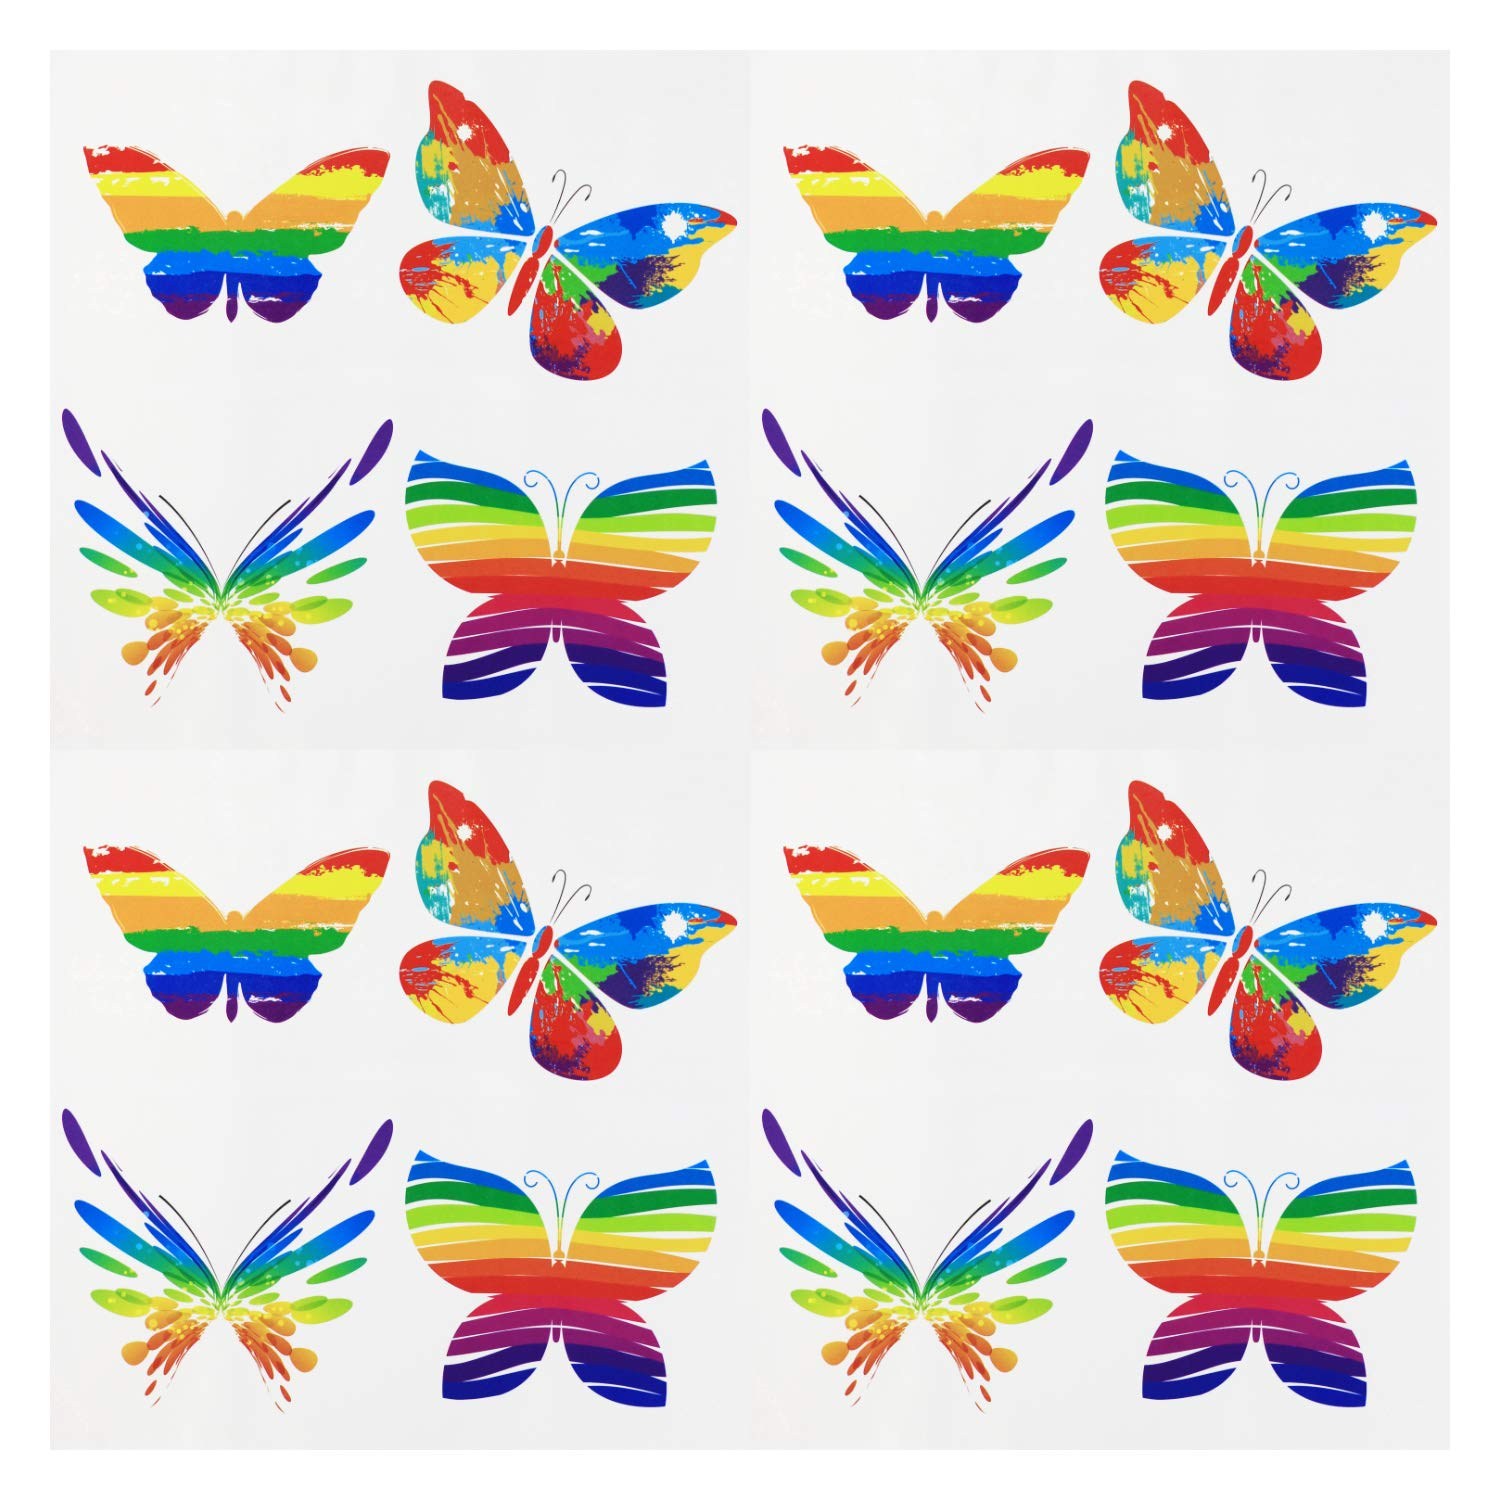 Fiomia Pride Temporary Tattoos Rainbow Butterfly Stickers for LGBTQ Pride Parades Festival Waterproof Body Paints 4 Sheets 16Pcs